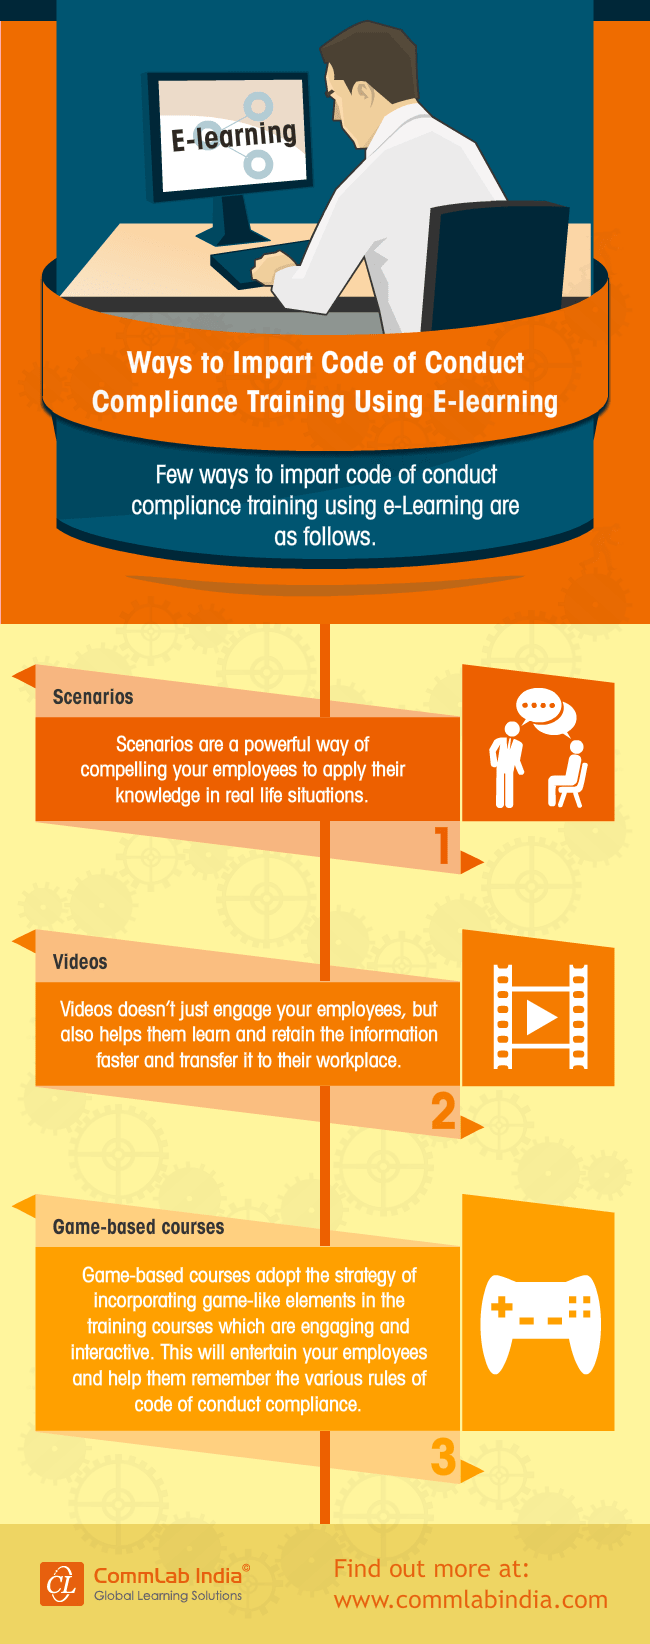 tips to improve ethical behavior in organizations ways to impart code of conduct compliance training using e learning infographic